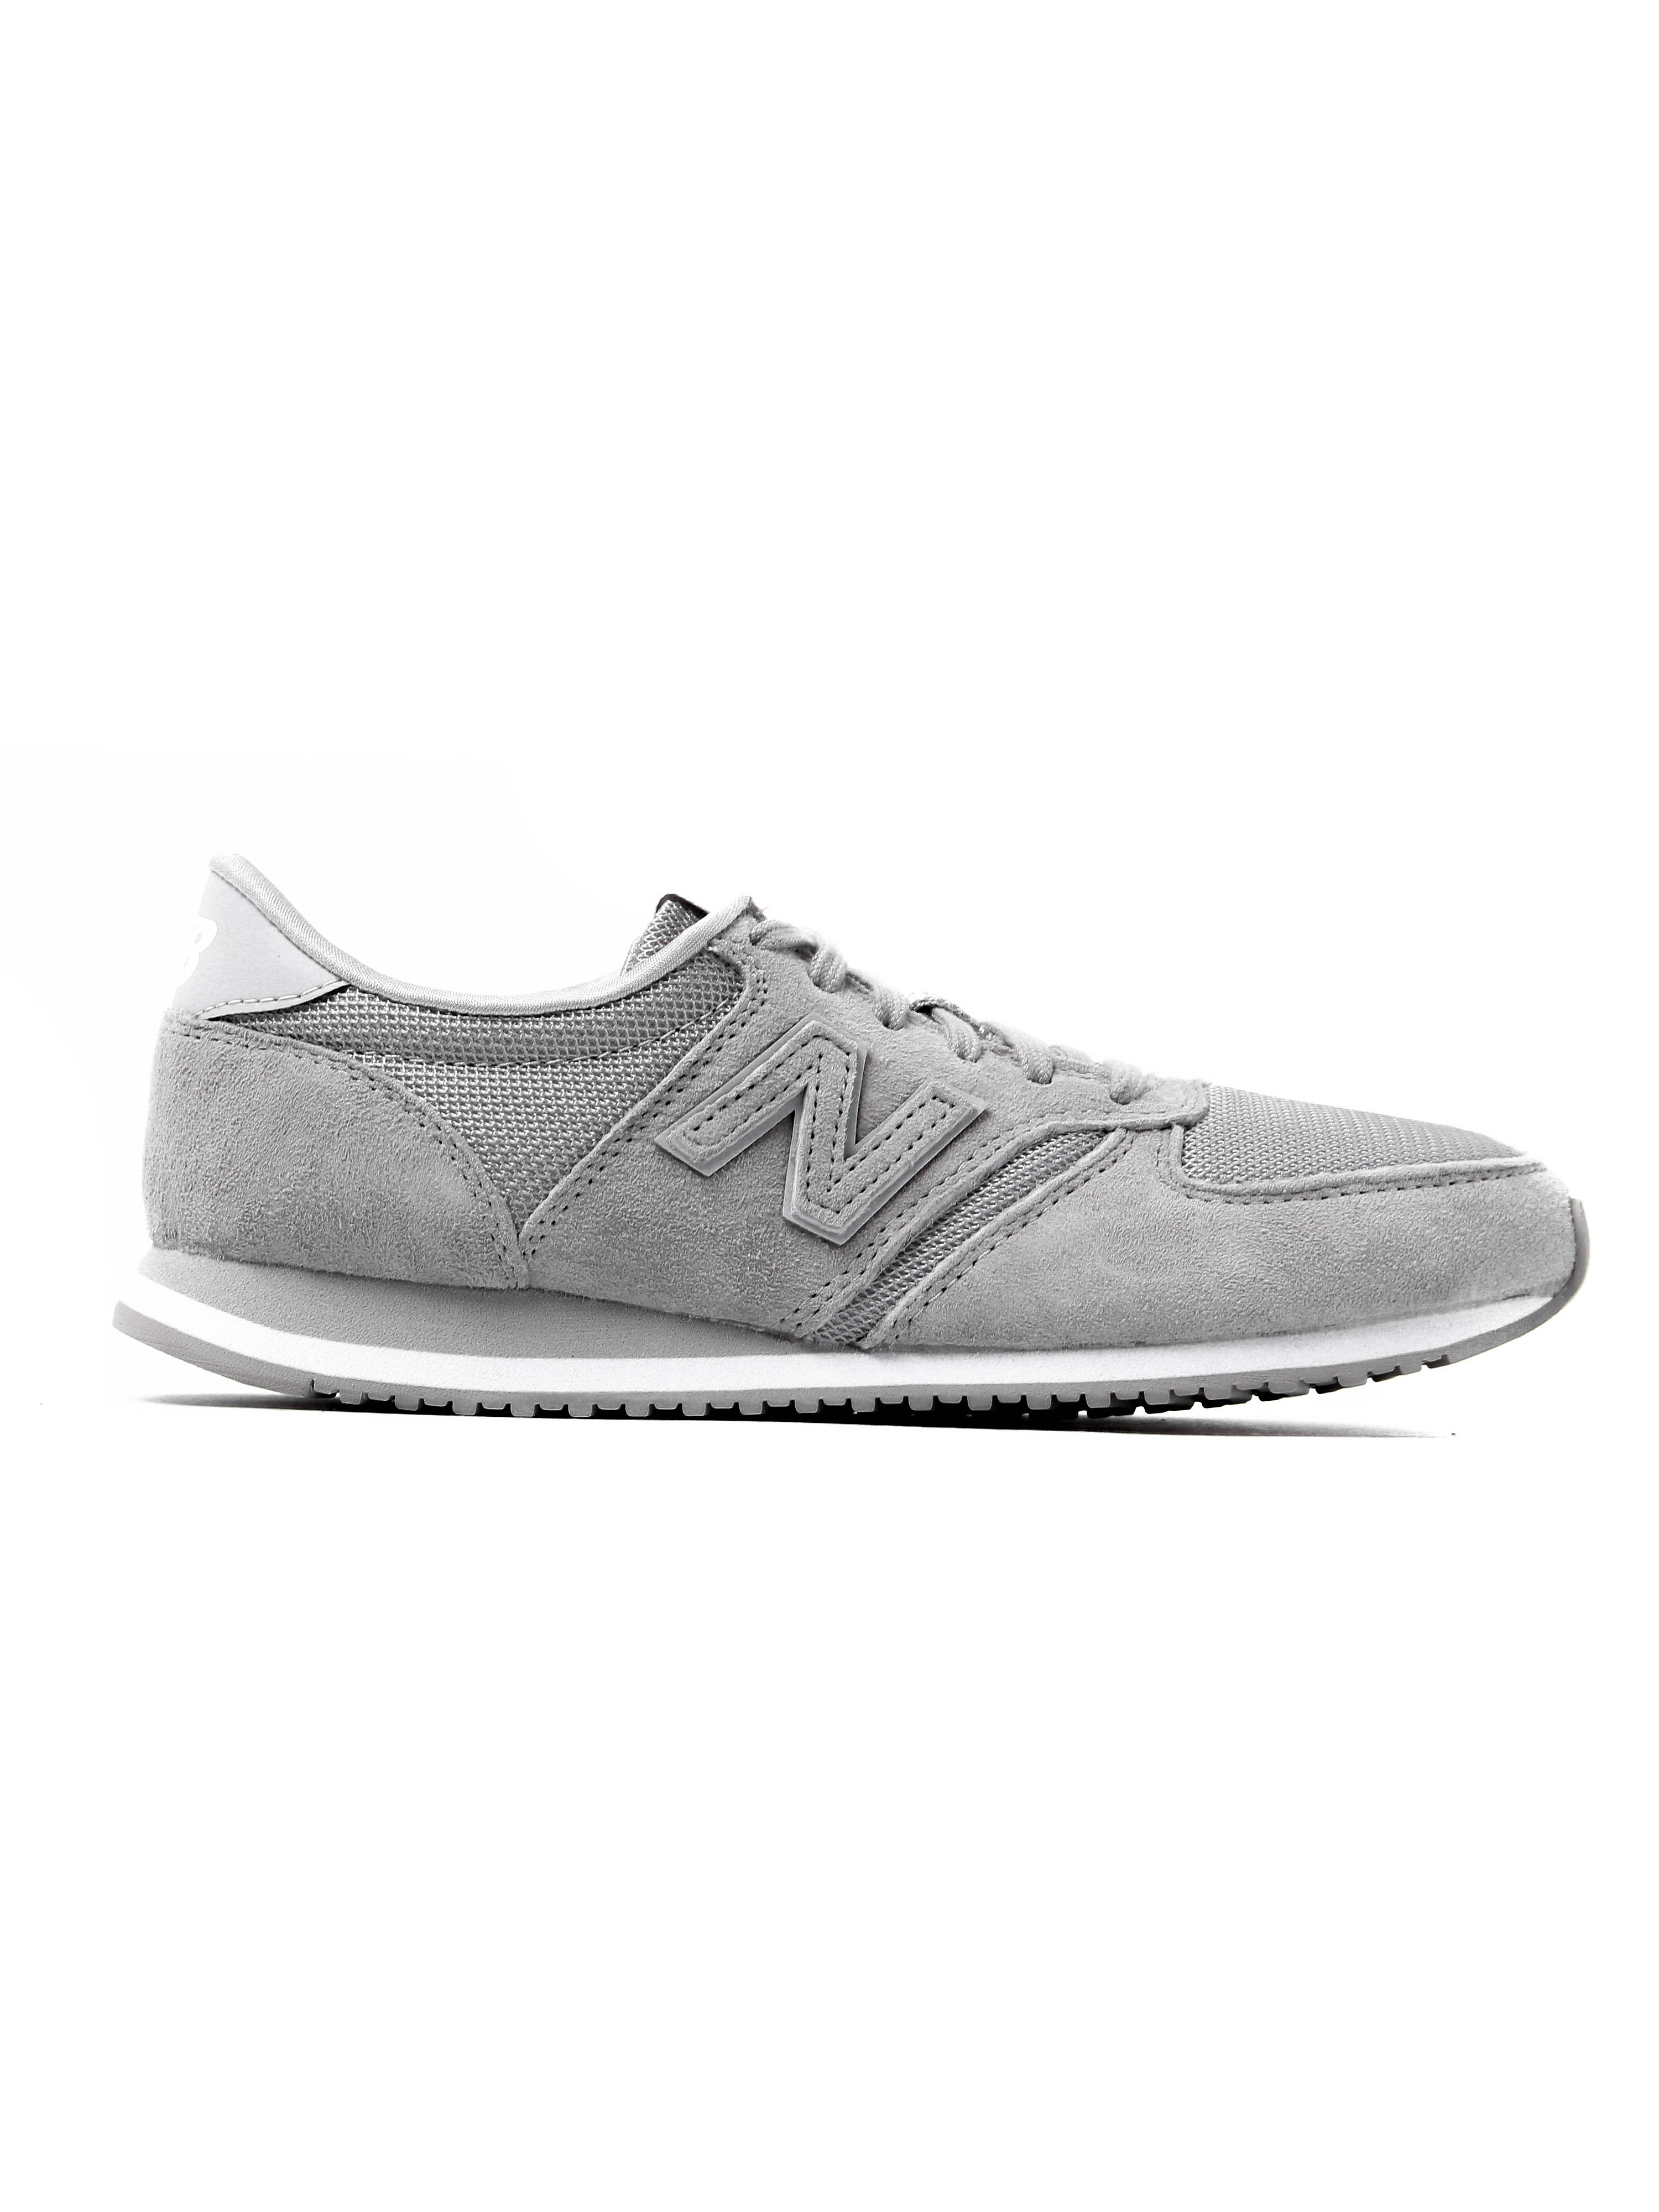 New Balance Women's 420 Trainers - Pale Grey Suede